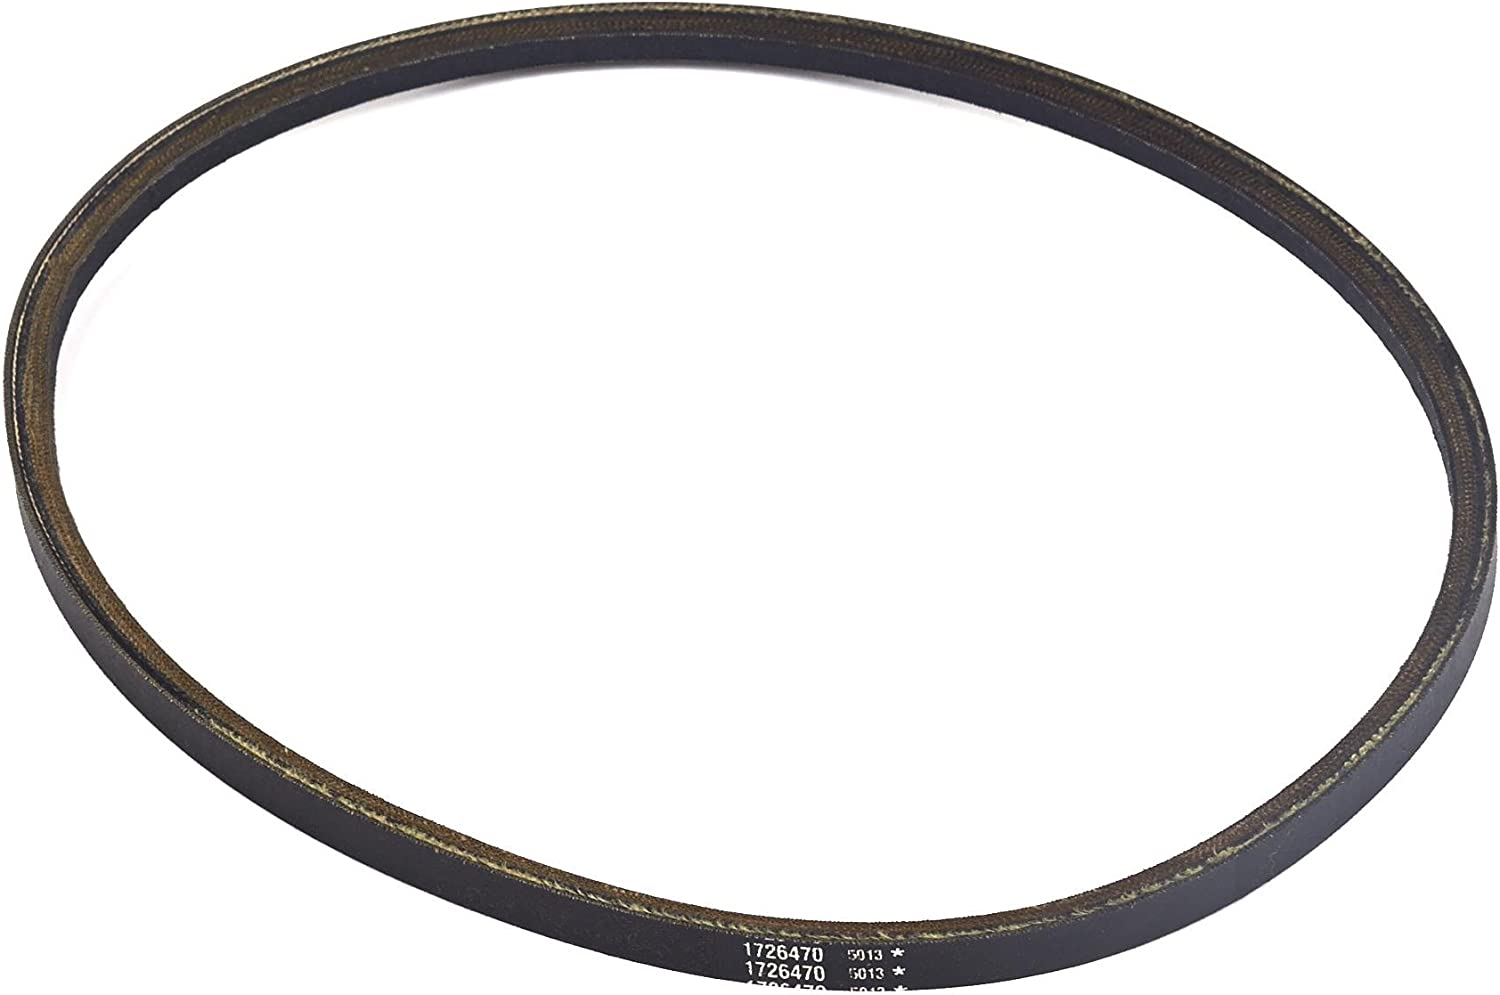 CRAFTSMAN 1726470SM made with Kevlar Replacement Belt